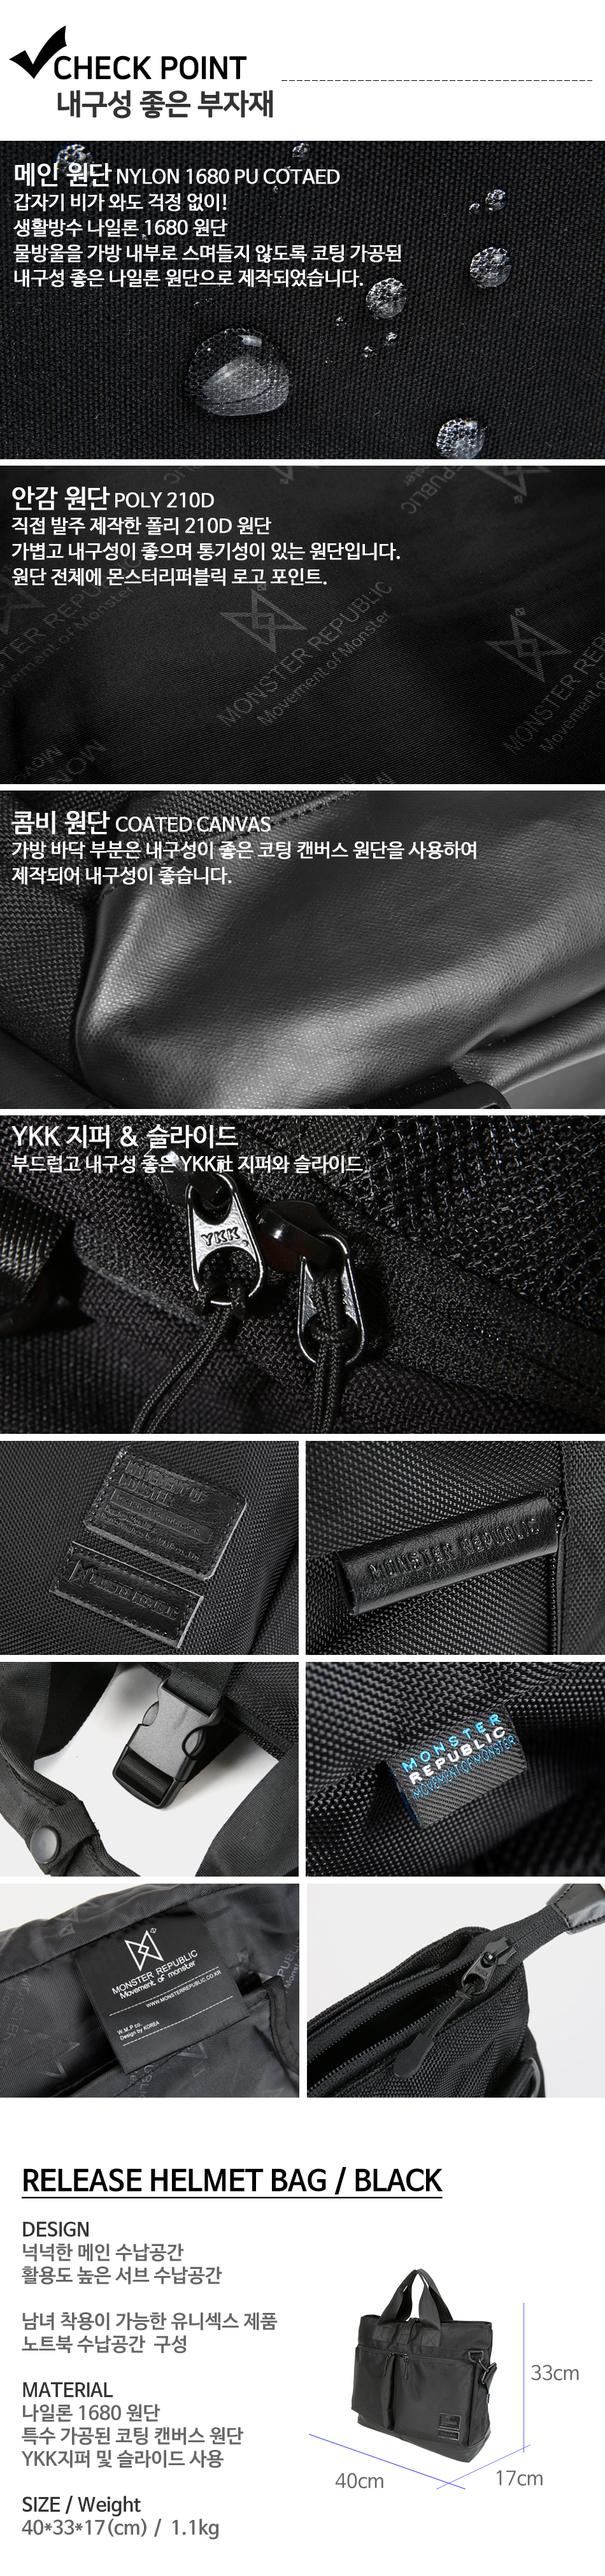 몬스터리퍼블릭(MONSTER REPUBLIC) RELEASE HELMET BAG / BLACK